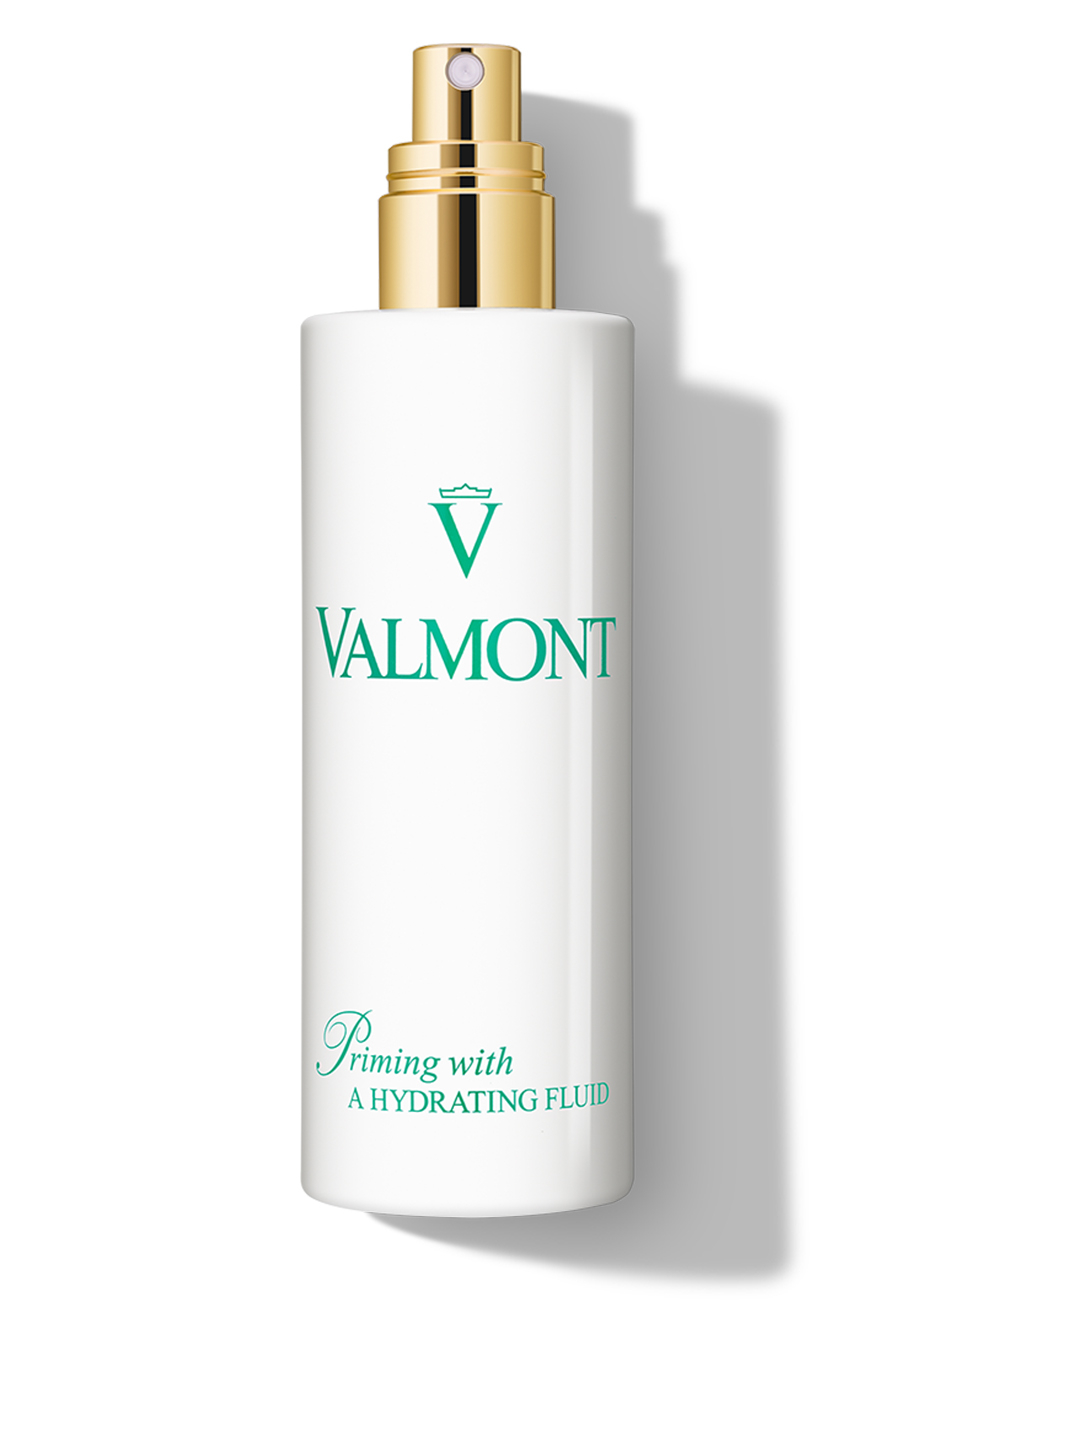 VALMONT PRIMING WITH A HYDRATING FLUID - Moisturizing Priming Mist For Face & Body Beauty